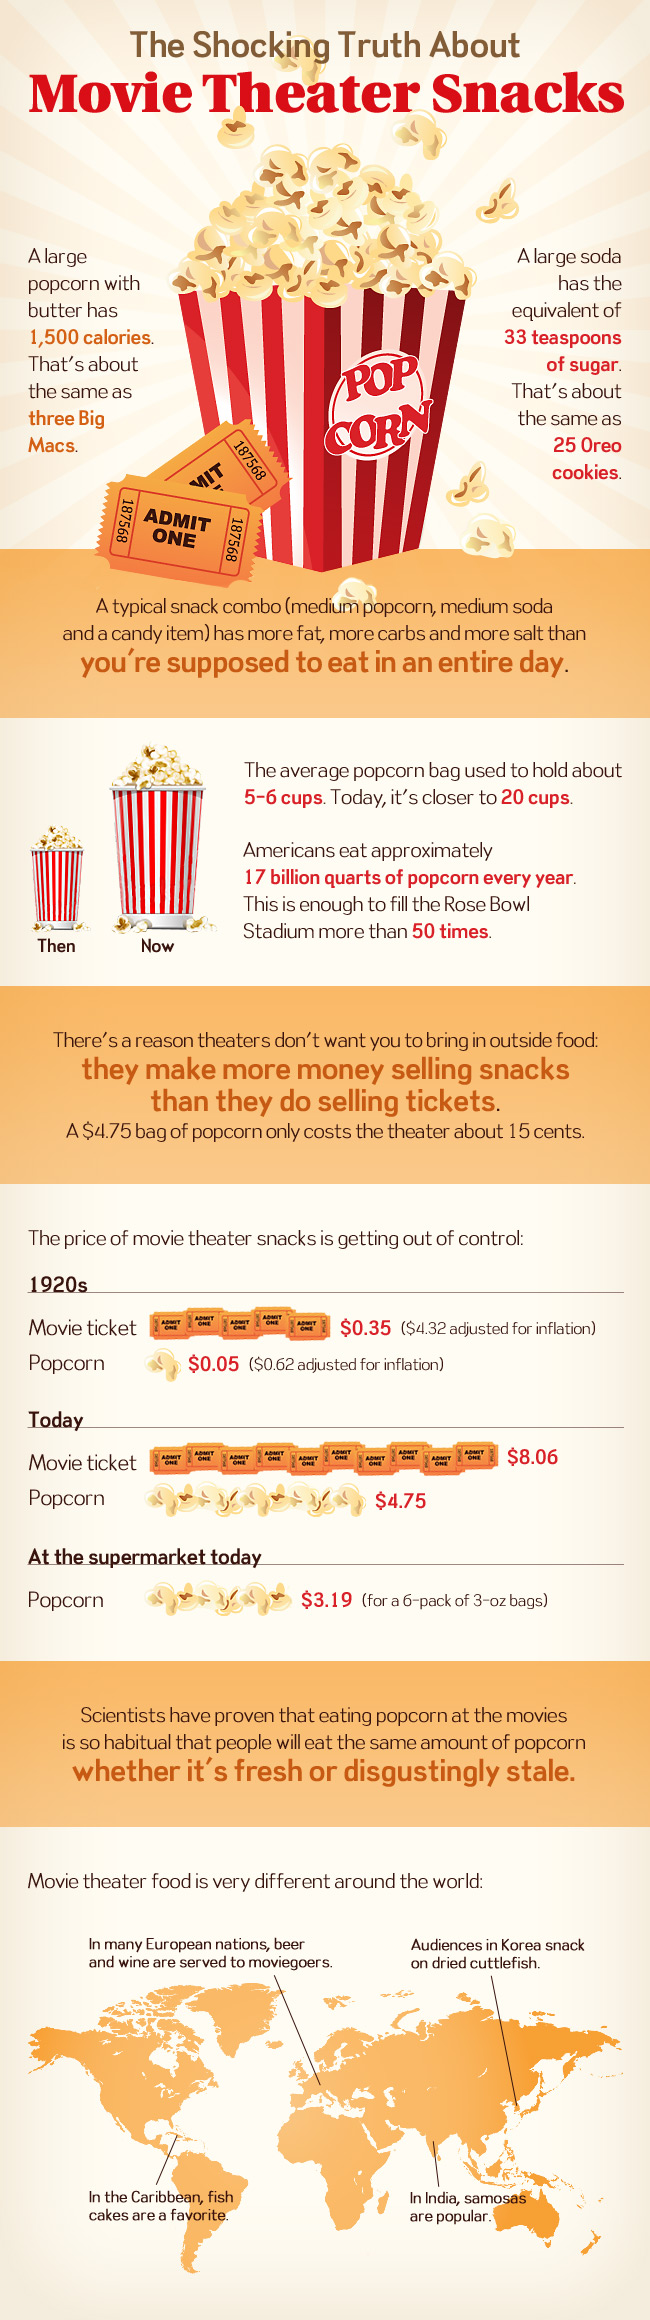 The Shocking Truth About Movie Theater Snacks